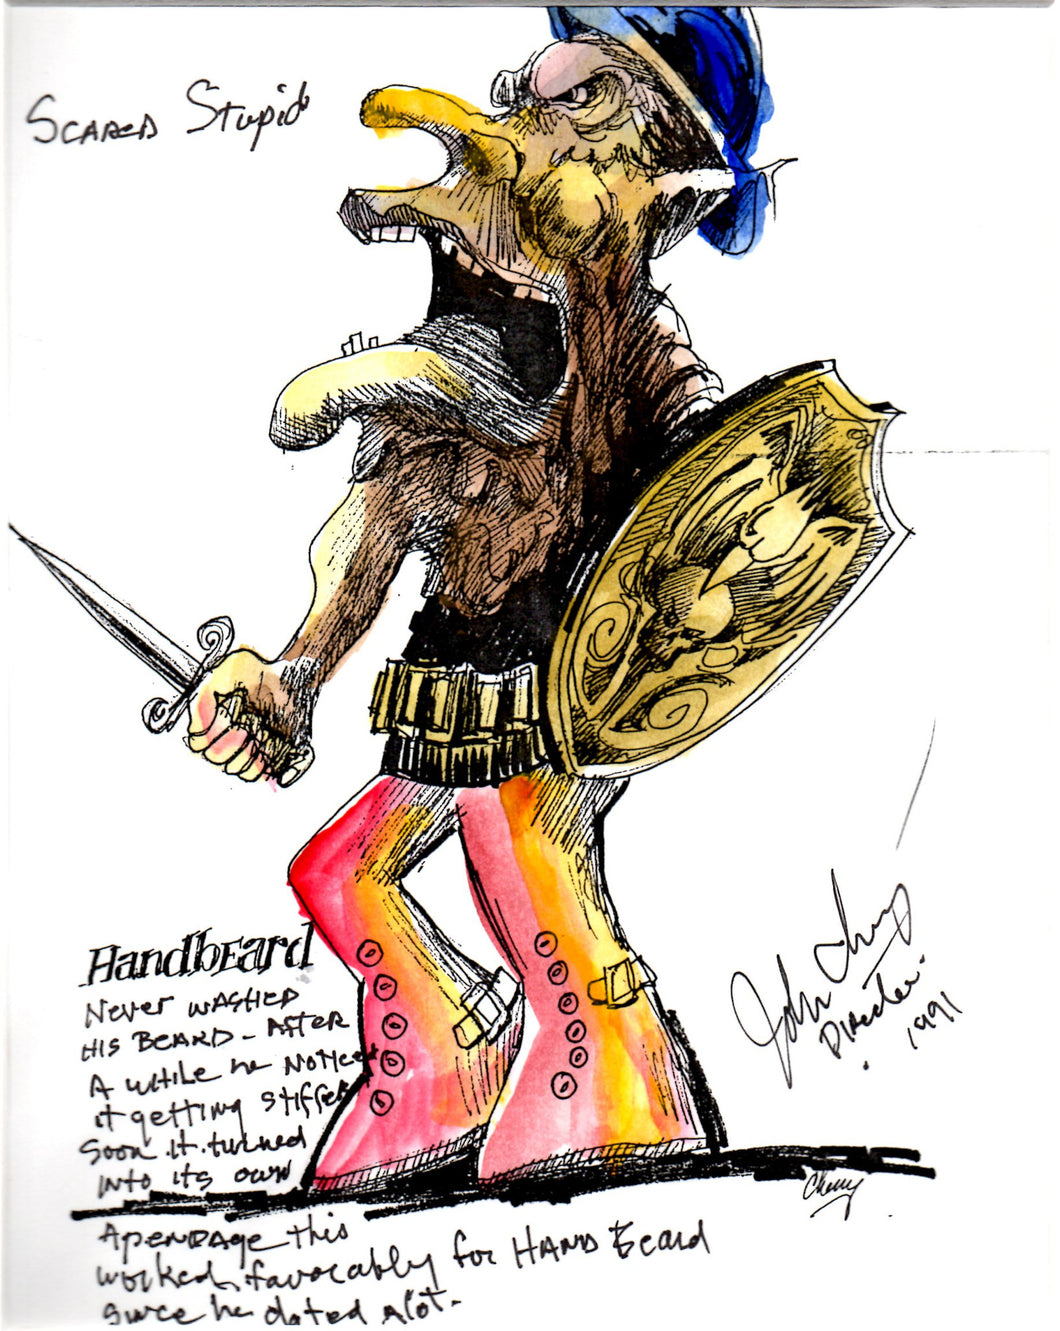 Handbeard - Ernest Scared Stupid Pre-Production Troll Design - SBS022